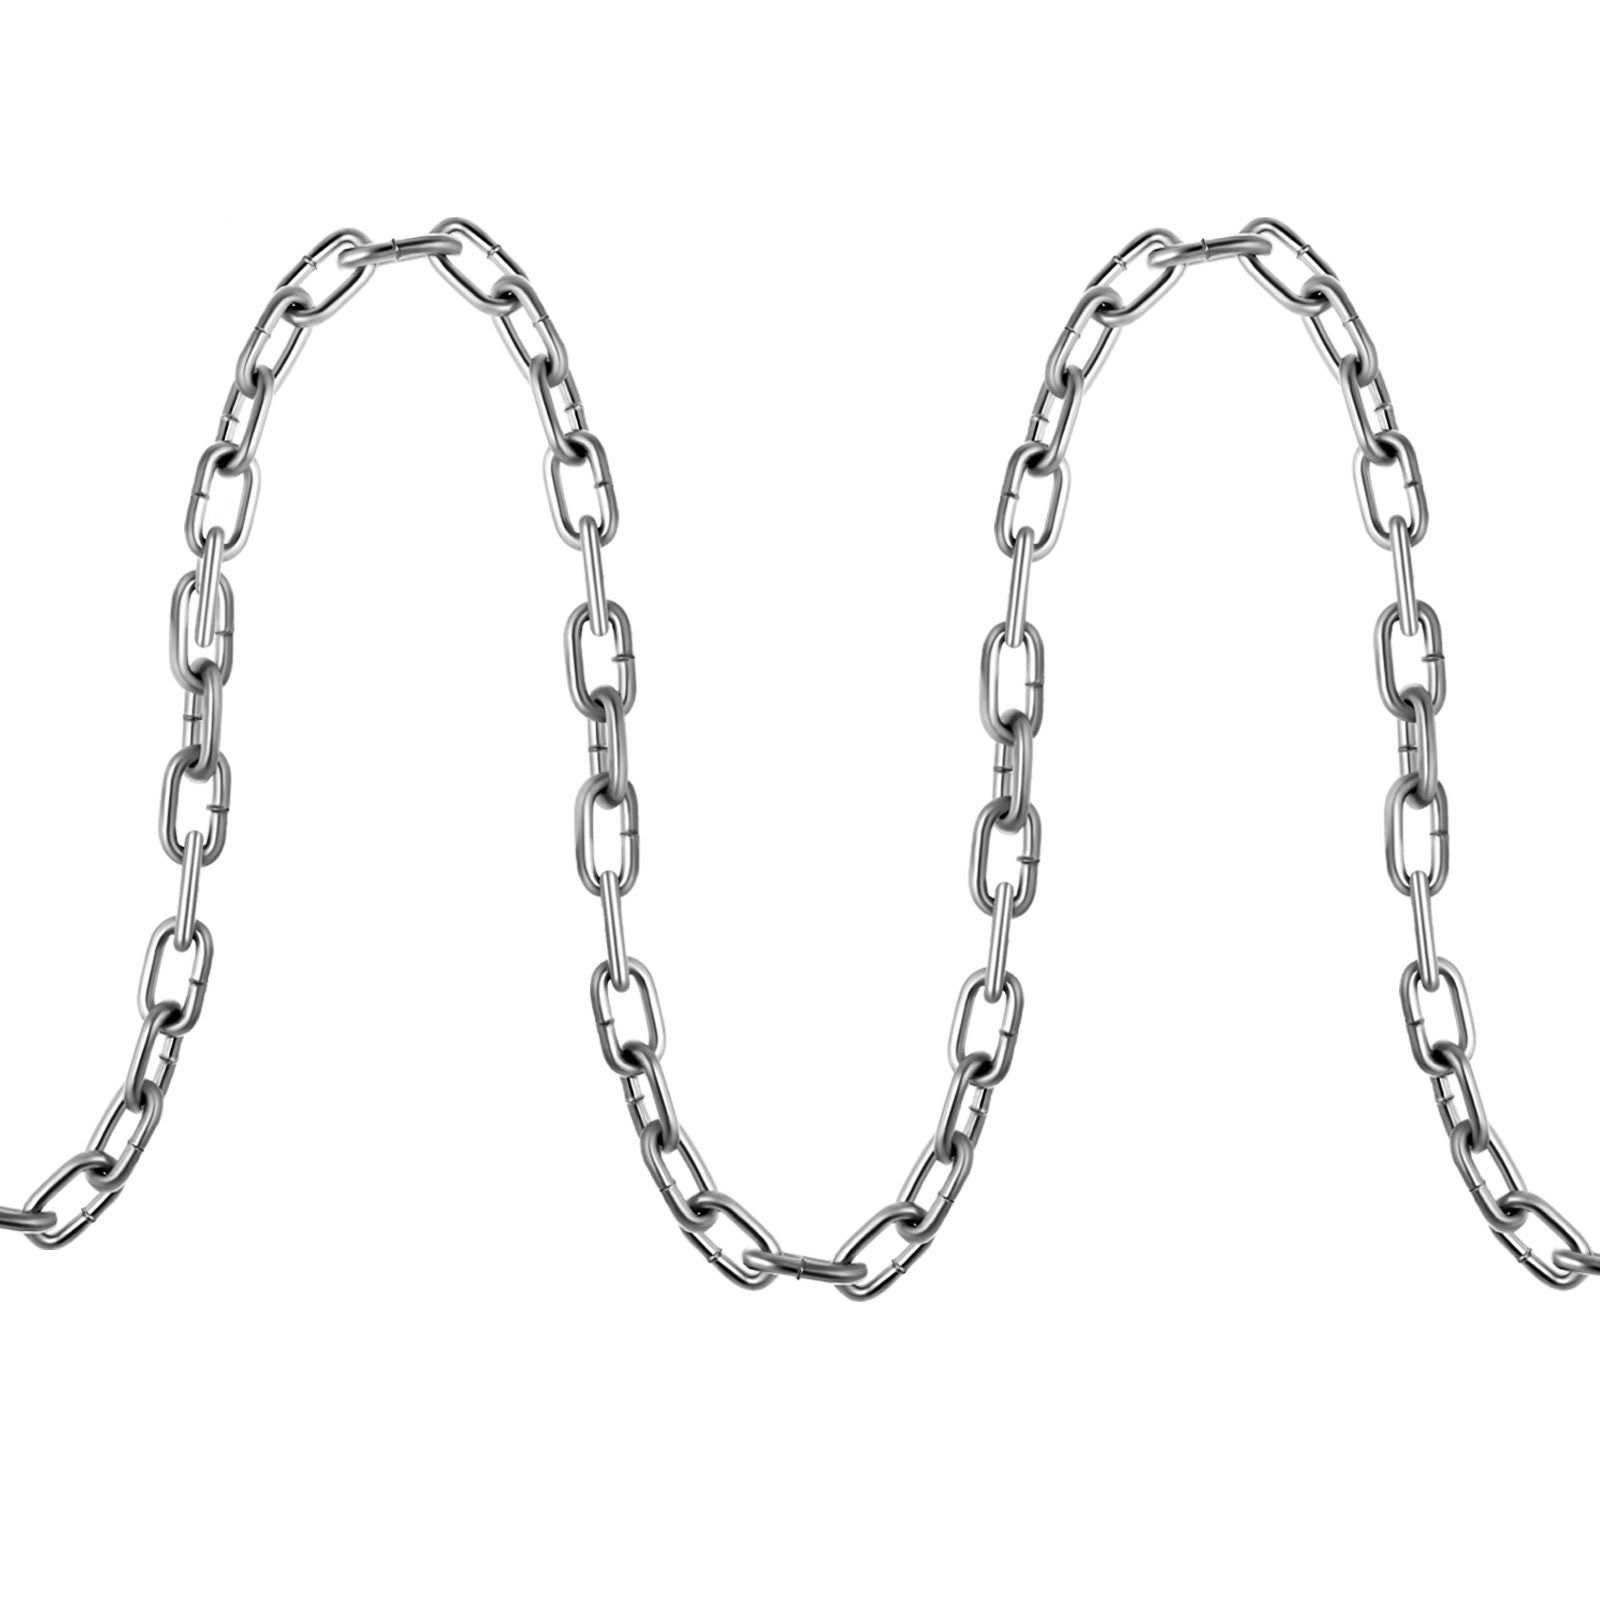 Coil Chain Zinc Plated 1/4'' 20' 6100kg/13500lb Binding Hanging G30 Chain